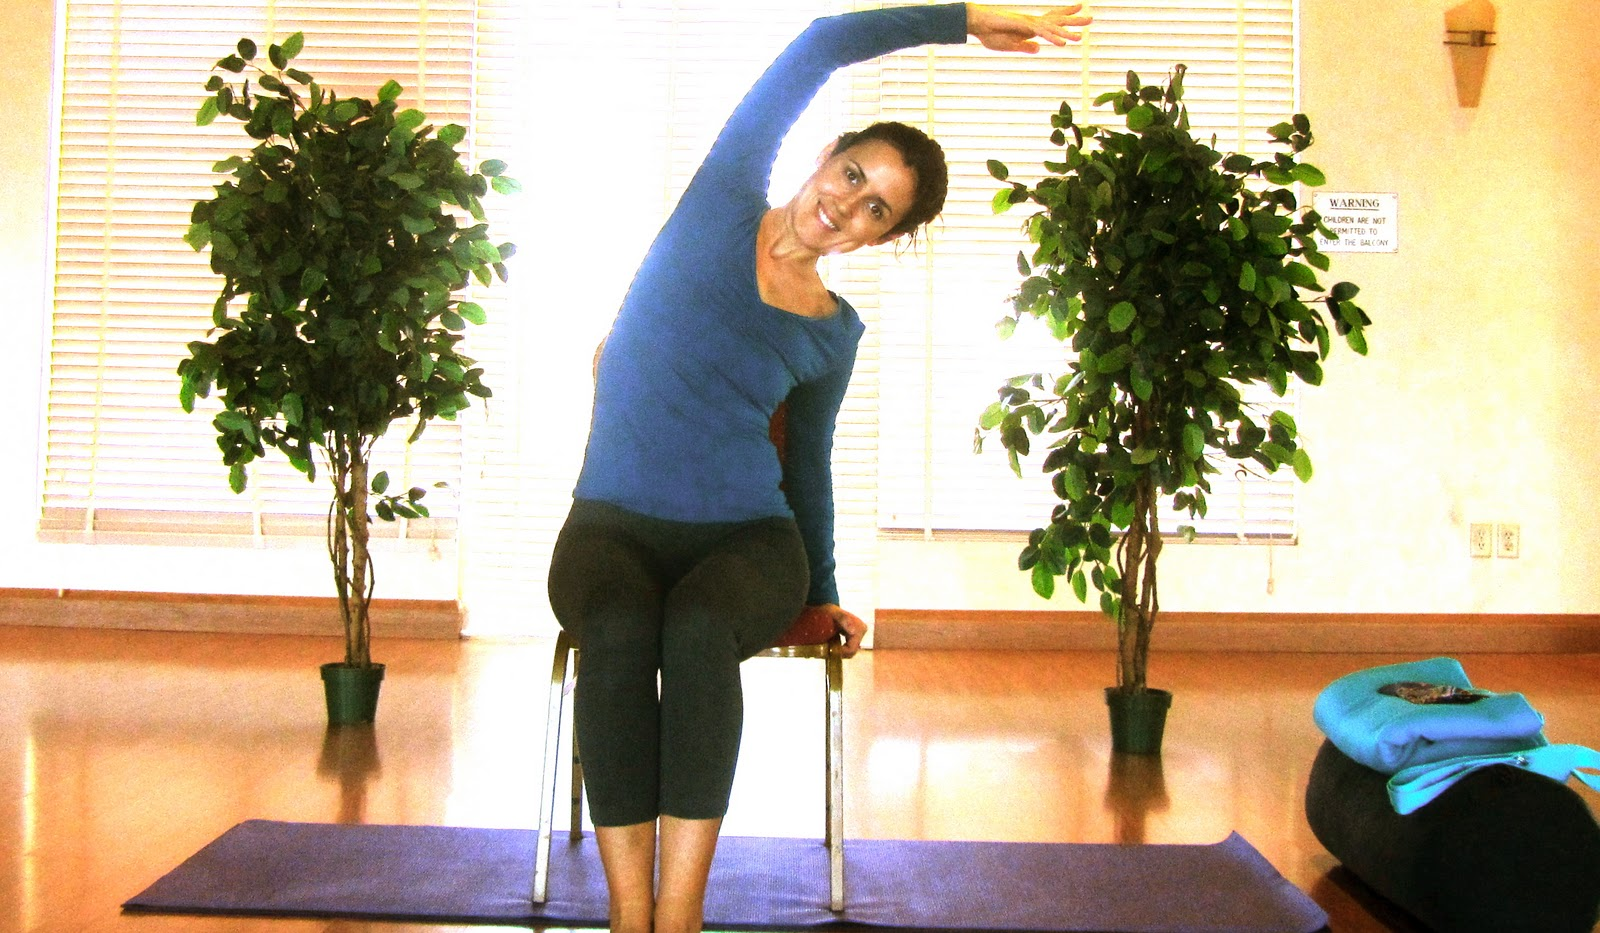 chair exercises at work kids reading cranky fitness can you out sitting on your ass